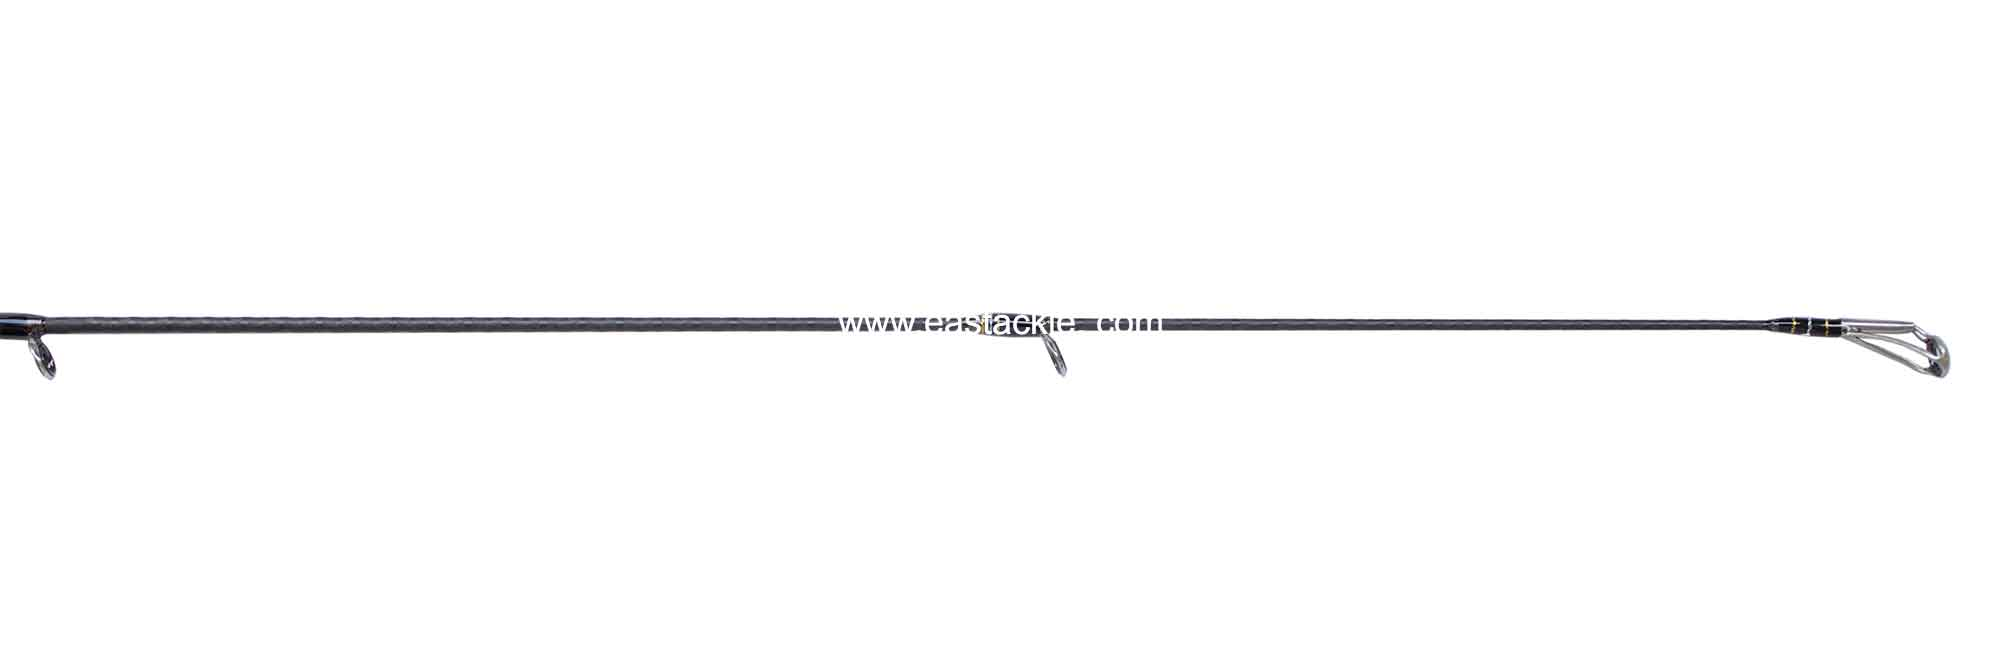 Megabass - Shadow Pangea - SP-92L - Sea Bass Spinning Rod - Tip Section